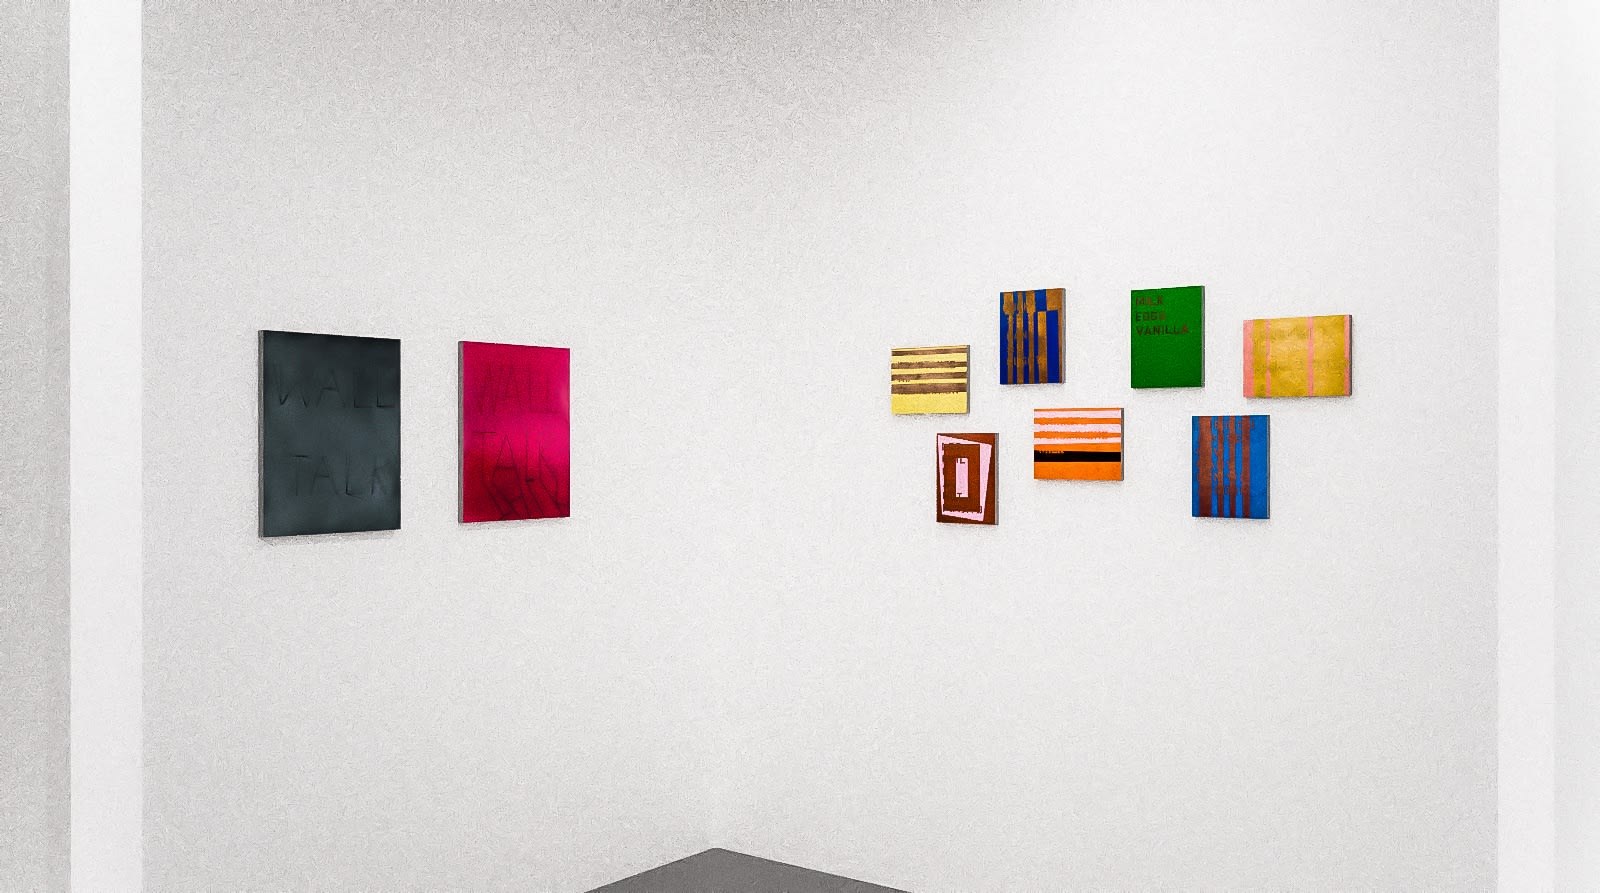 Works by Scott Reeder and Patrick Chamberlain in The Written Word (virtual exhibition view), 2020, Kavi Gupta